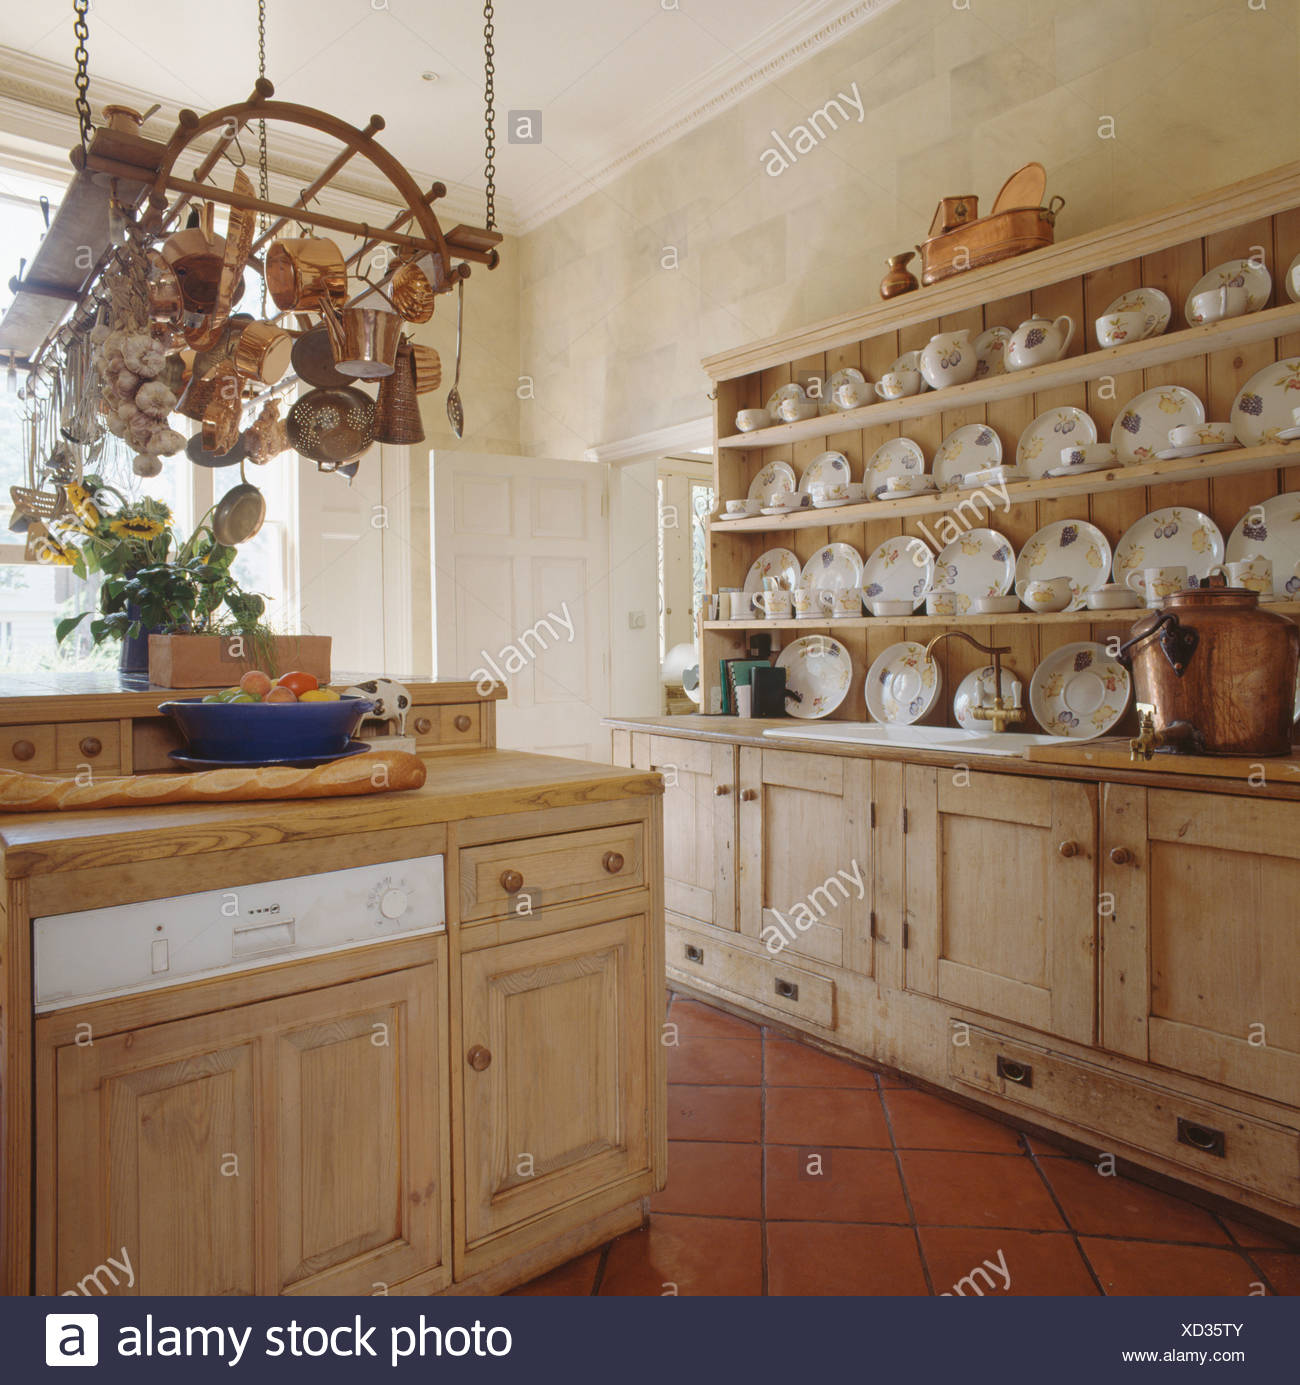 Picture of: Plates On Antique Pine Dresser In Country Kitchen With Saucepans On Rack Above Dishwasher In Fitted Pine Unit Stock Photo Alamy